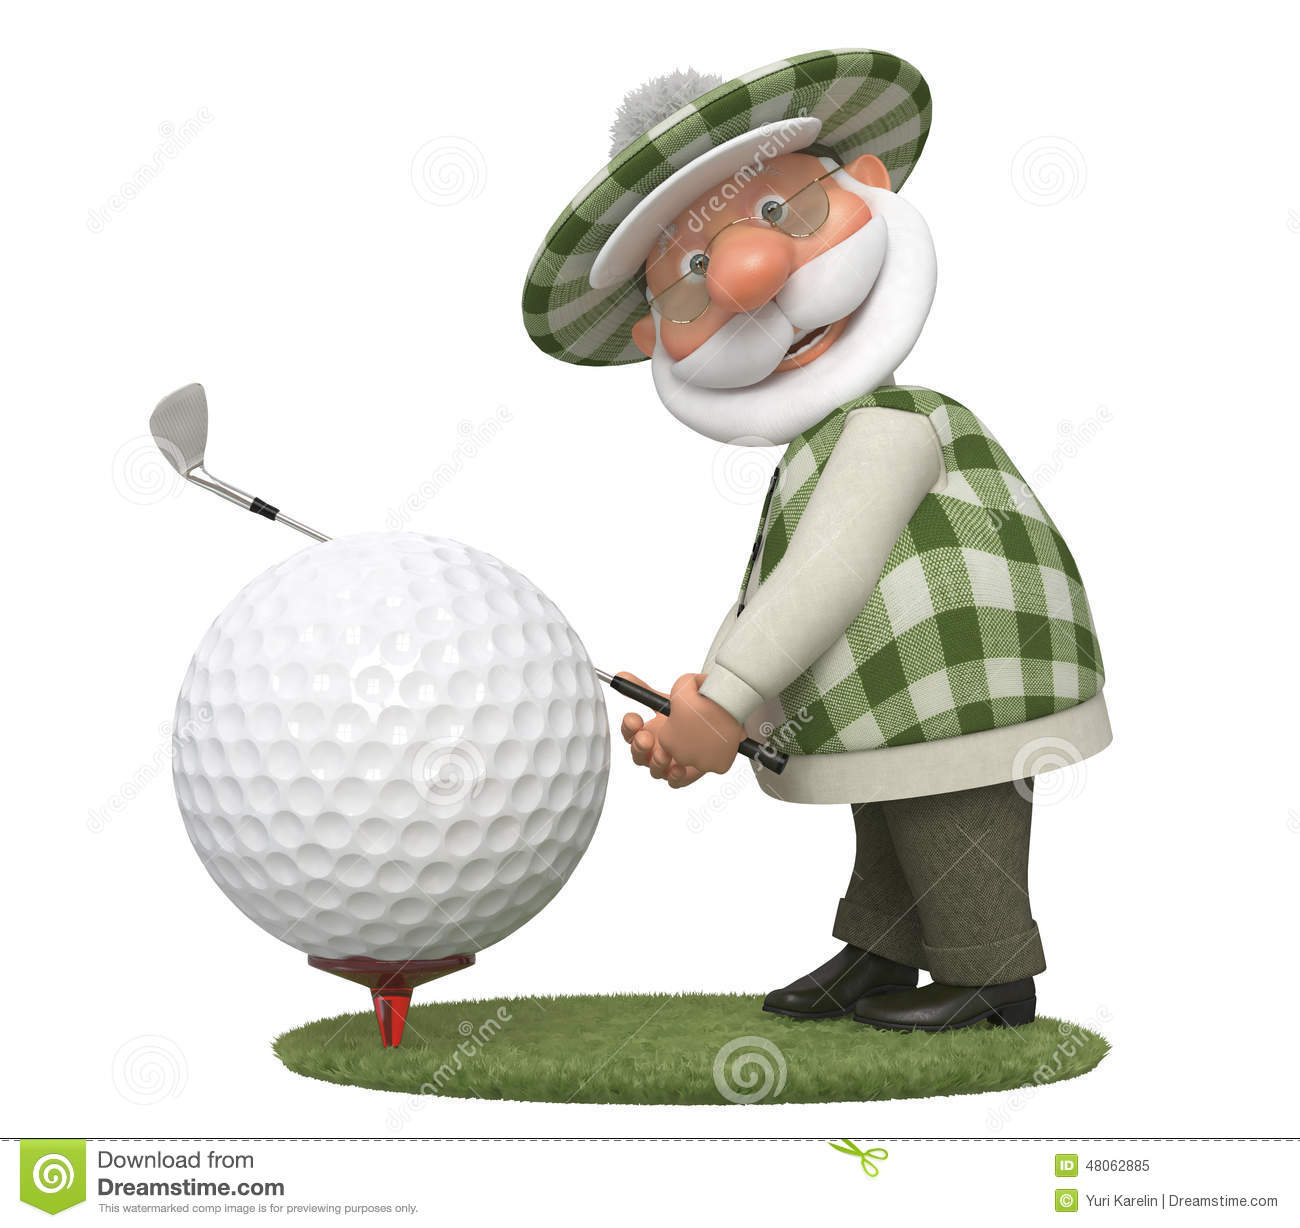 3d little man golfer stock illustration. Illustration of character on golf celebrities, golf driver covers characters, golf hearts, funny golf characters, golf bag, golf funnies cartoons, golf locker room, golf cartoons women, golf car characters, golf golf, golf fight,